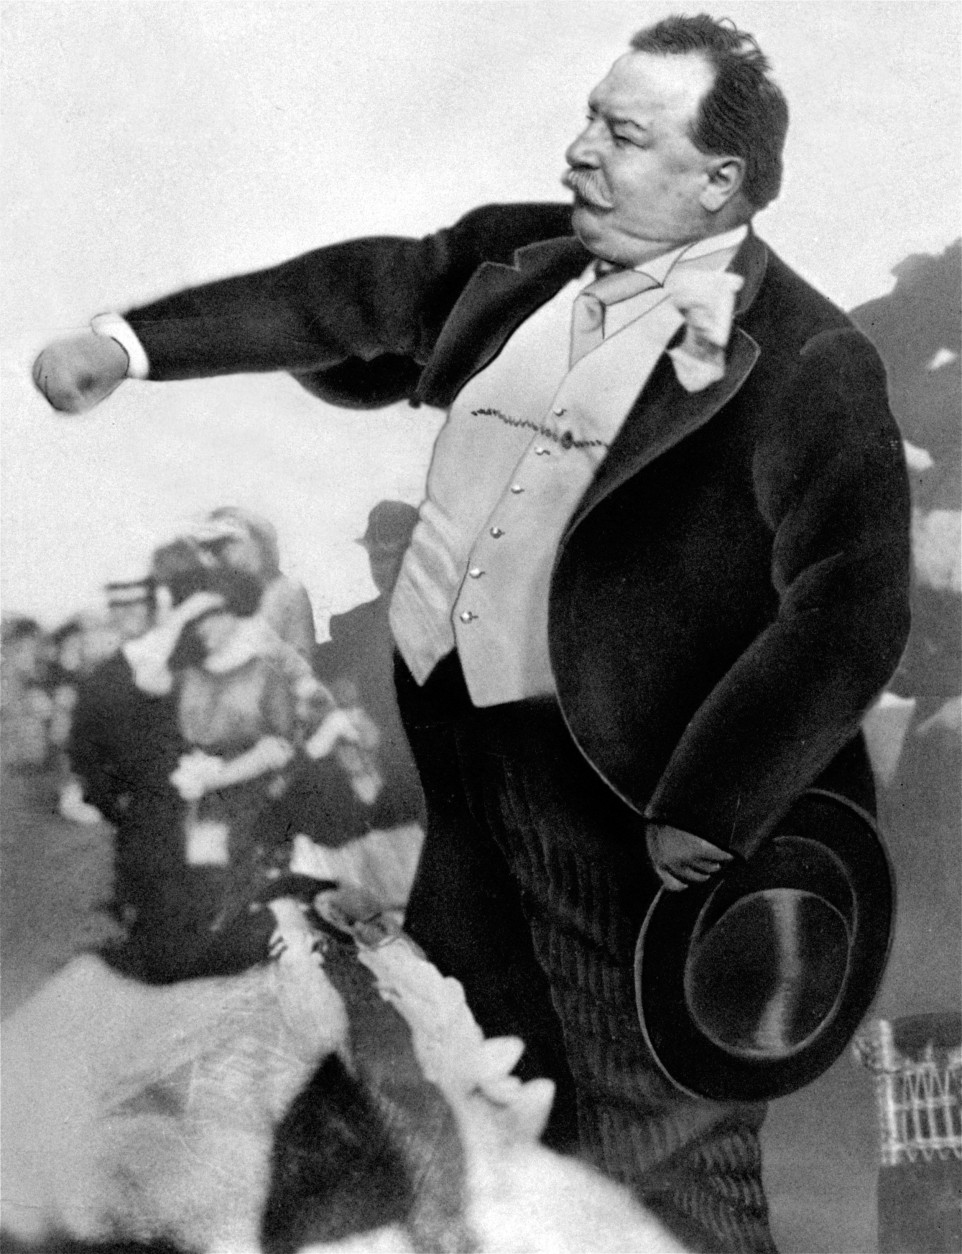 On this date in 1857, William Howard Taft - who served as President of the United States and as U.S. chief justice - was born in Cincinnati, Ohio. Here, Taft is seen throwing out the first ball on opening day for baseball, to start the season for the Washington Senators in 1912.  (AP Photo)